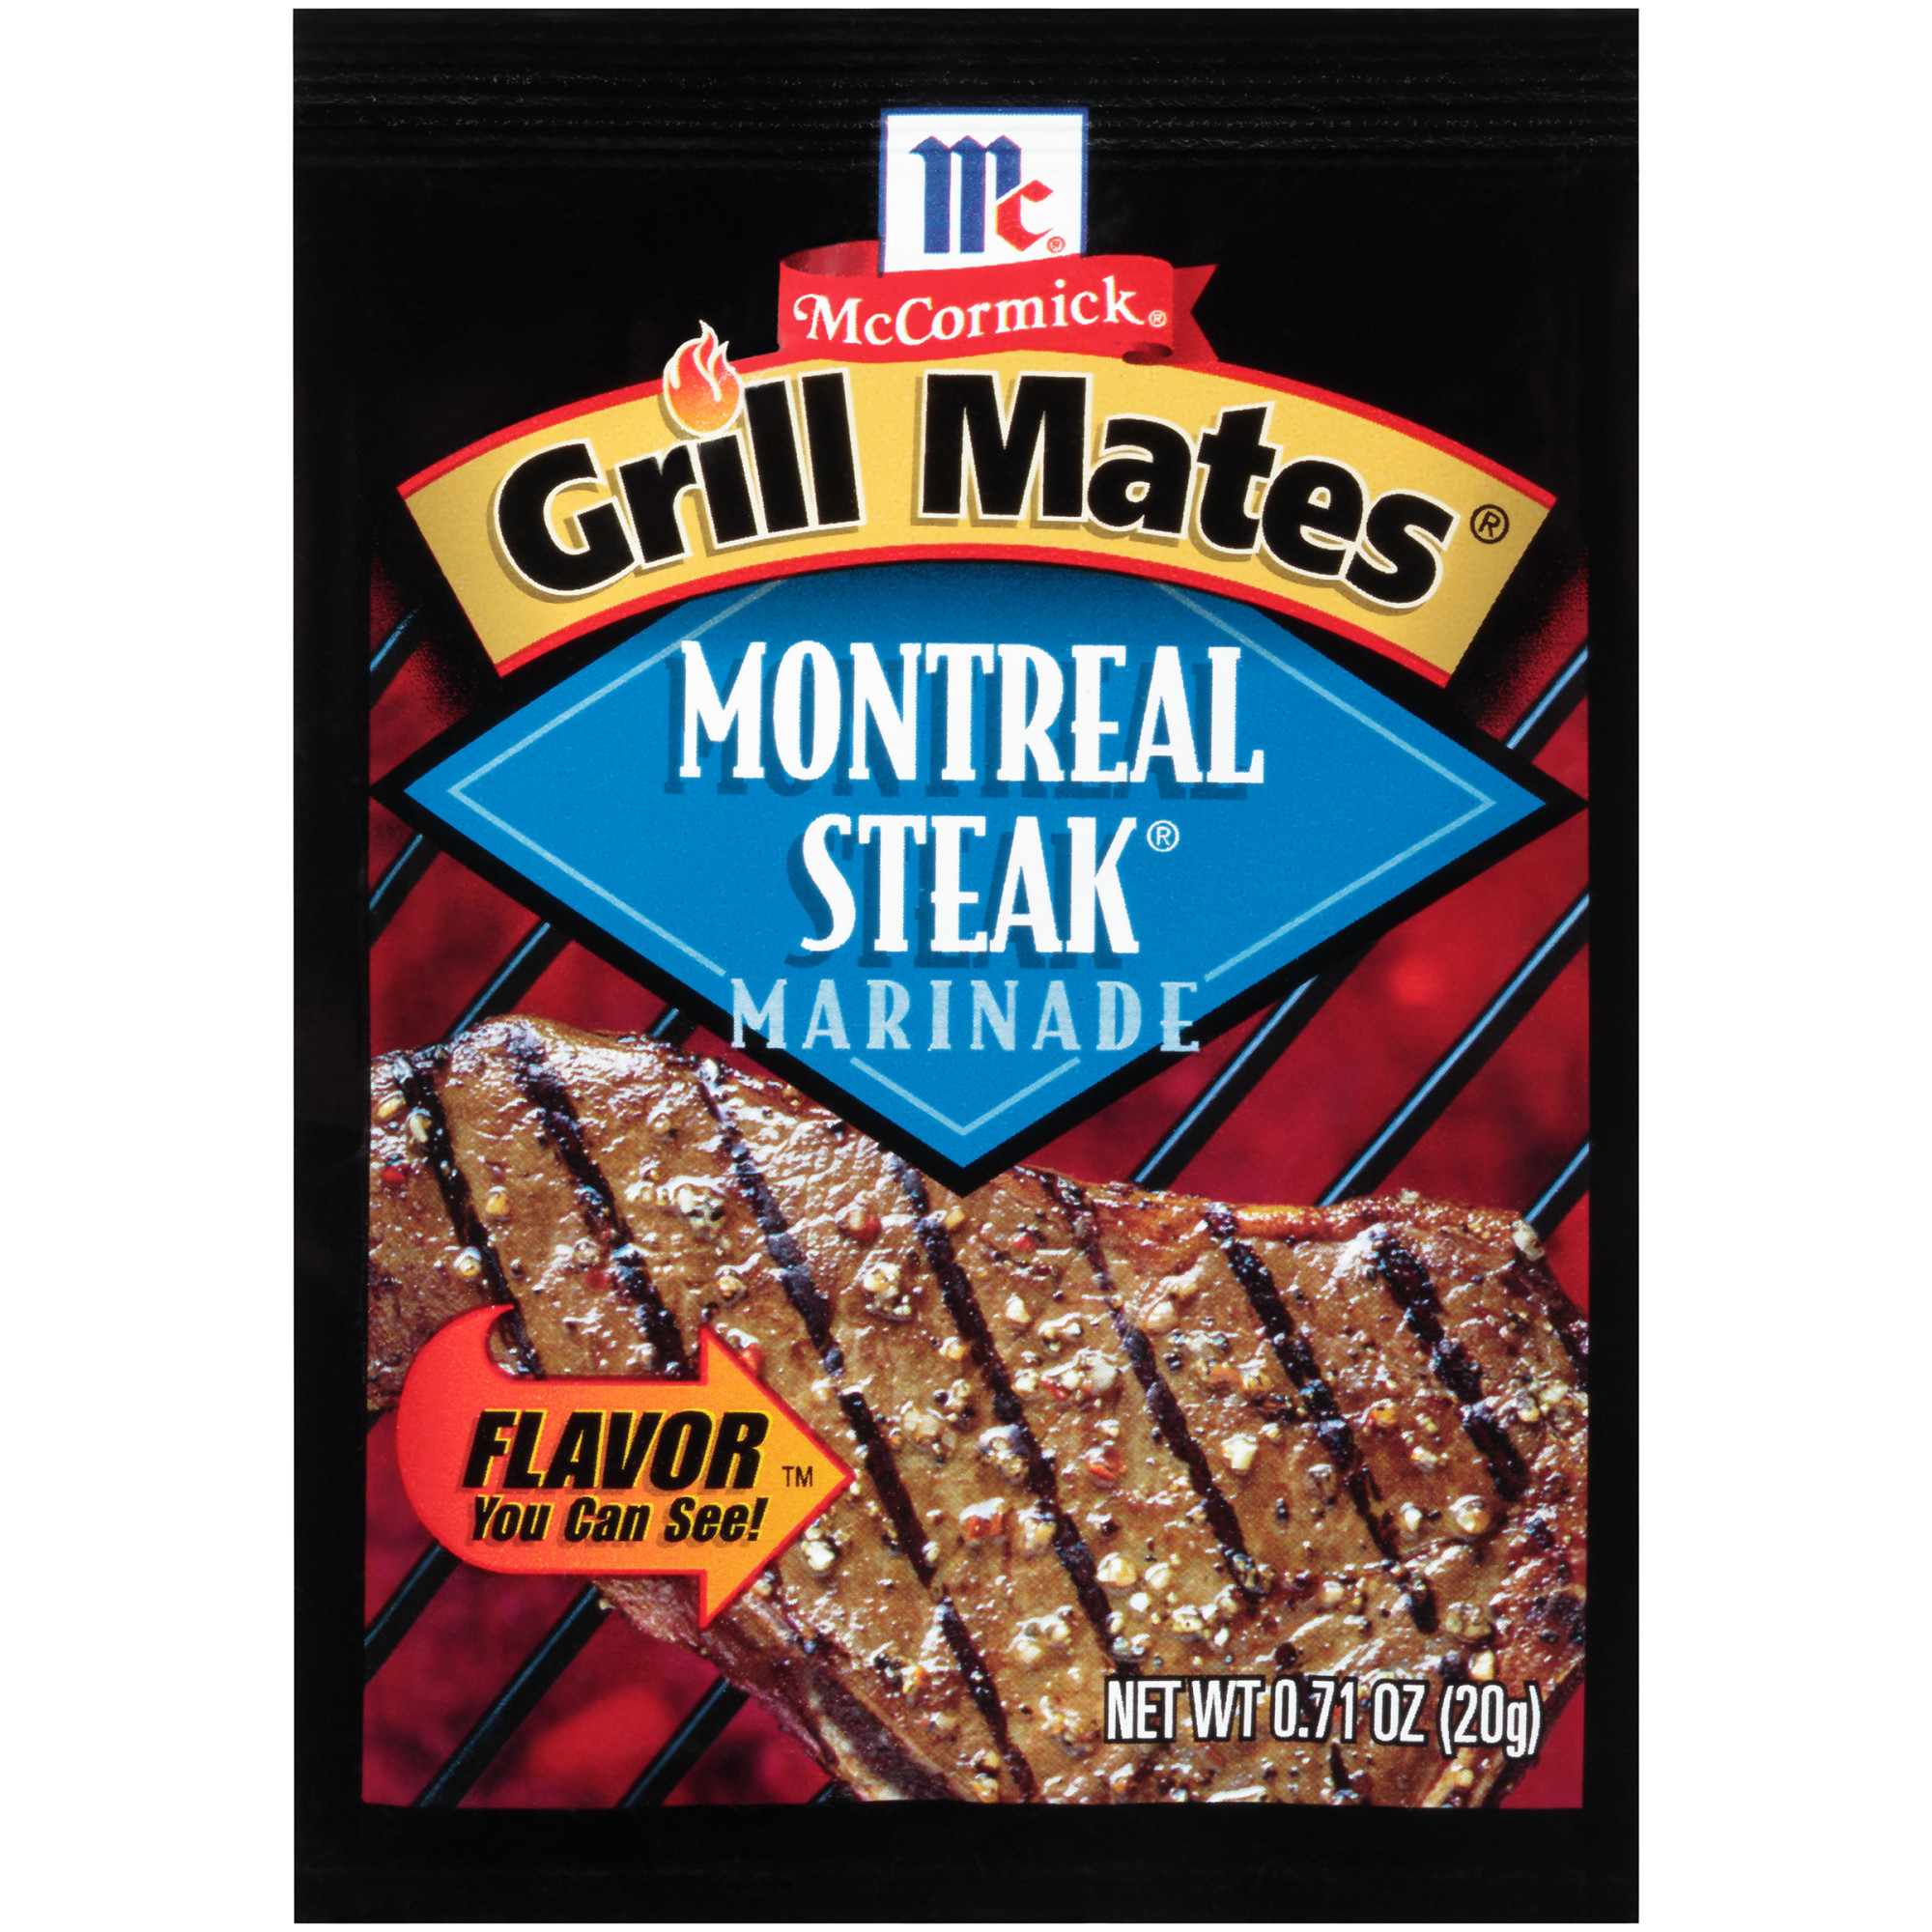 McCormick Grill Mates Montreal Steak Marinade Mix, 0.71 oz